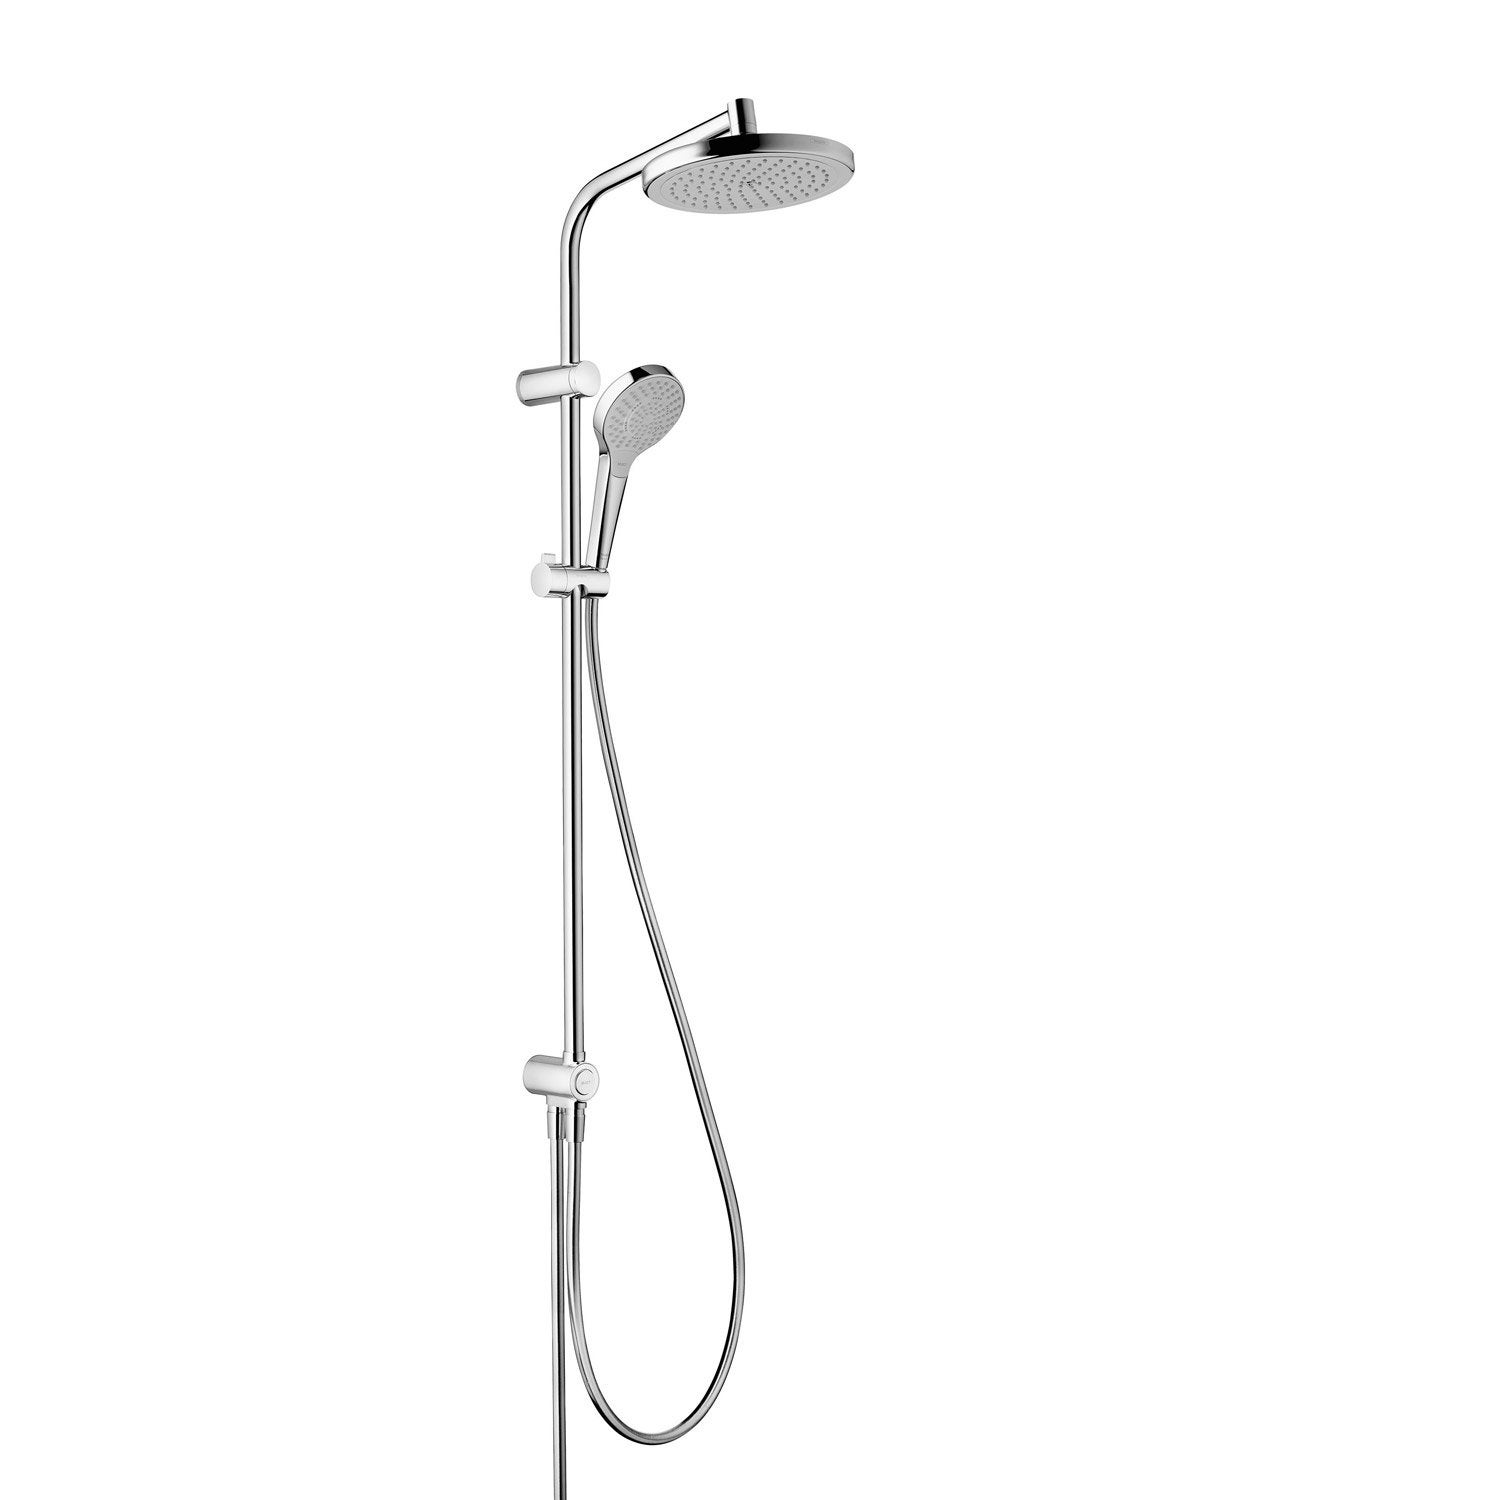 Barre de douche hansgrohe hansgrohe kit mitigeur de for Ensemble de douche leroy merlin